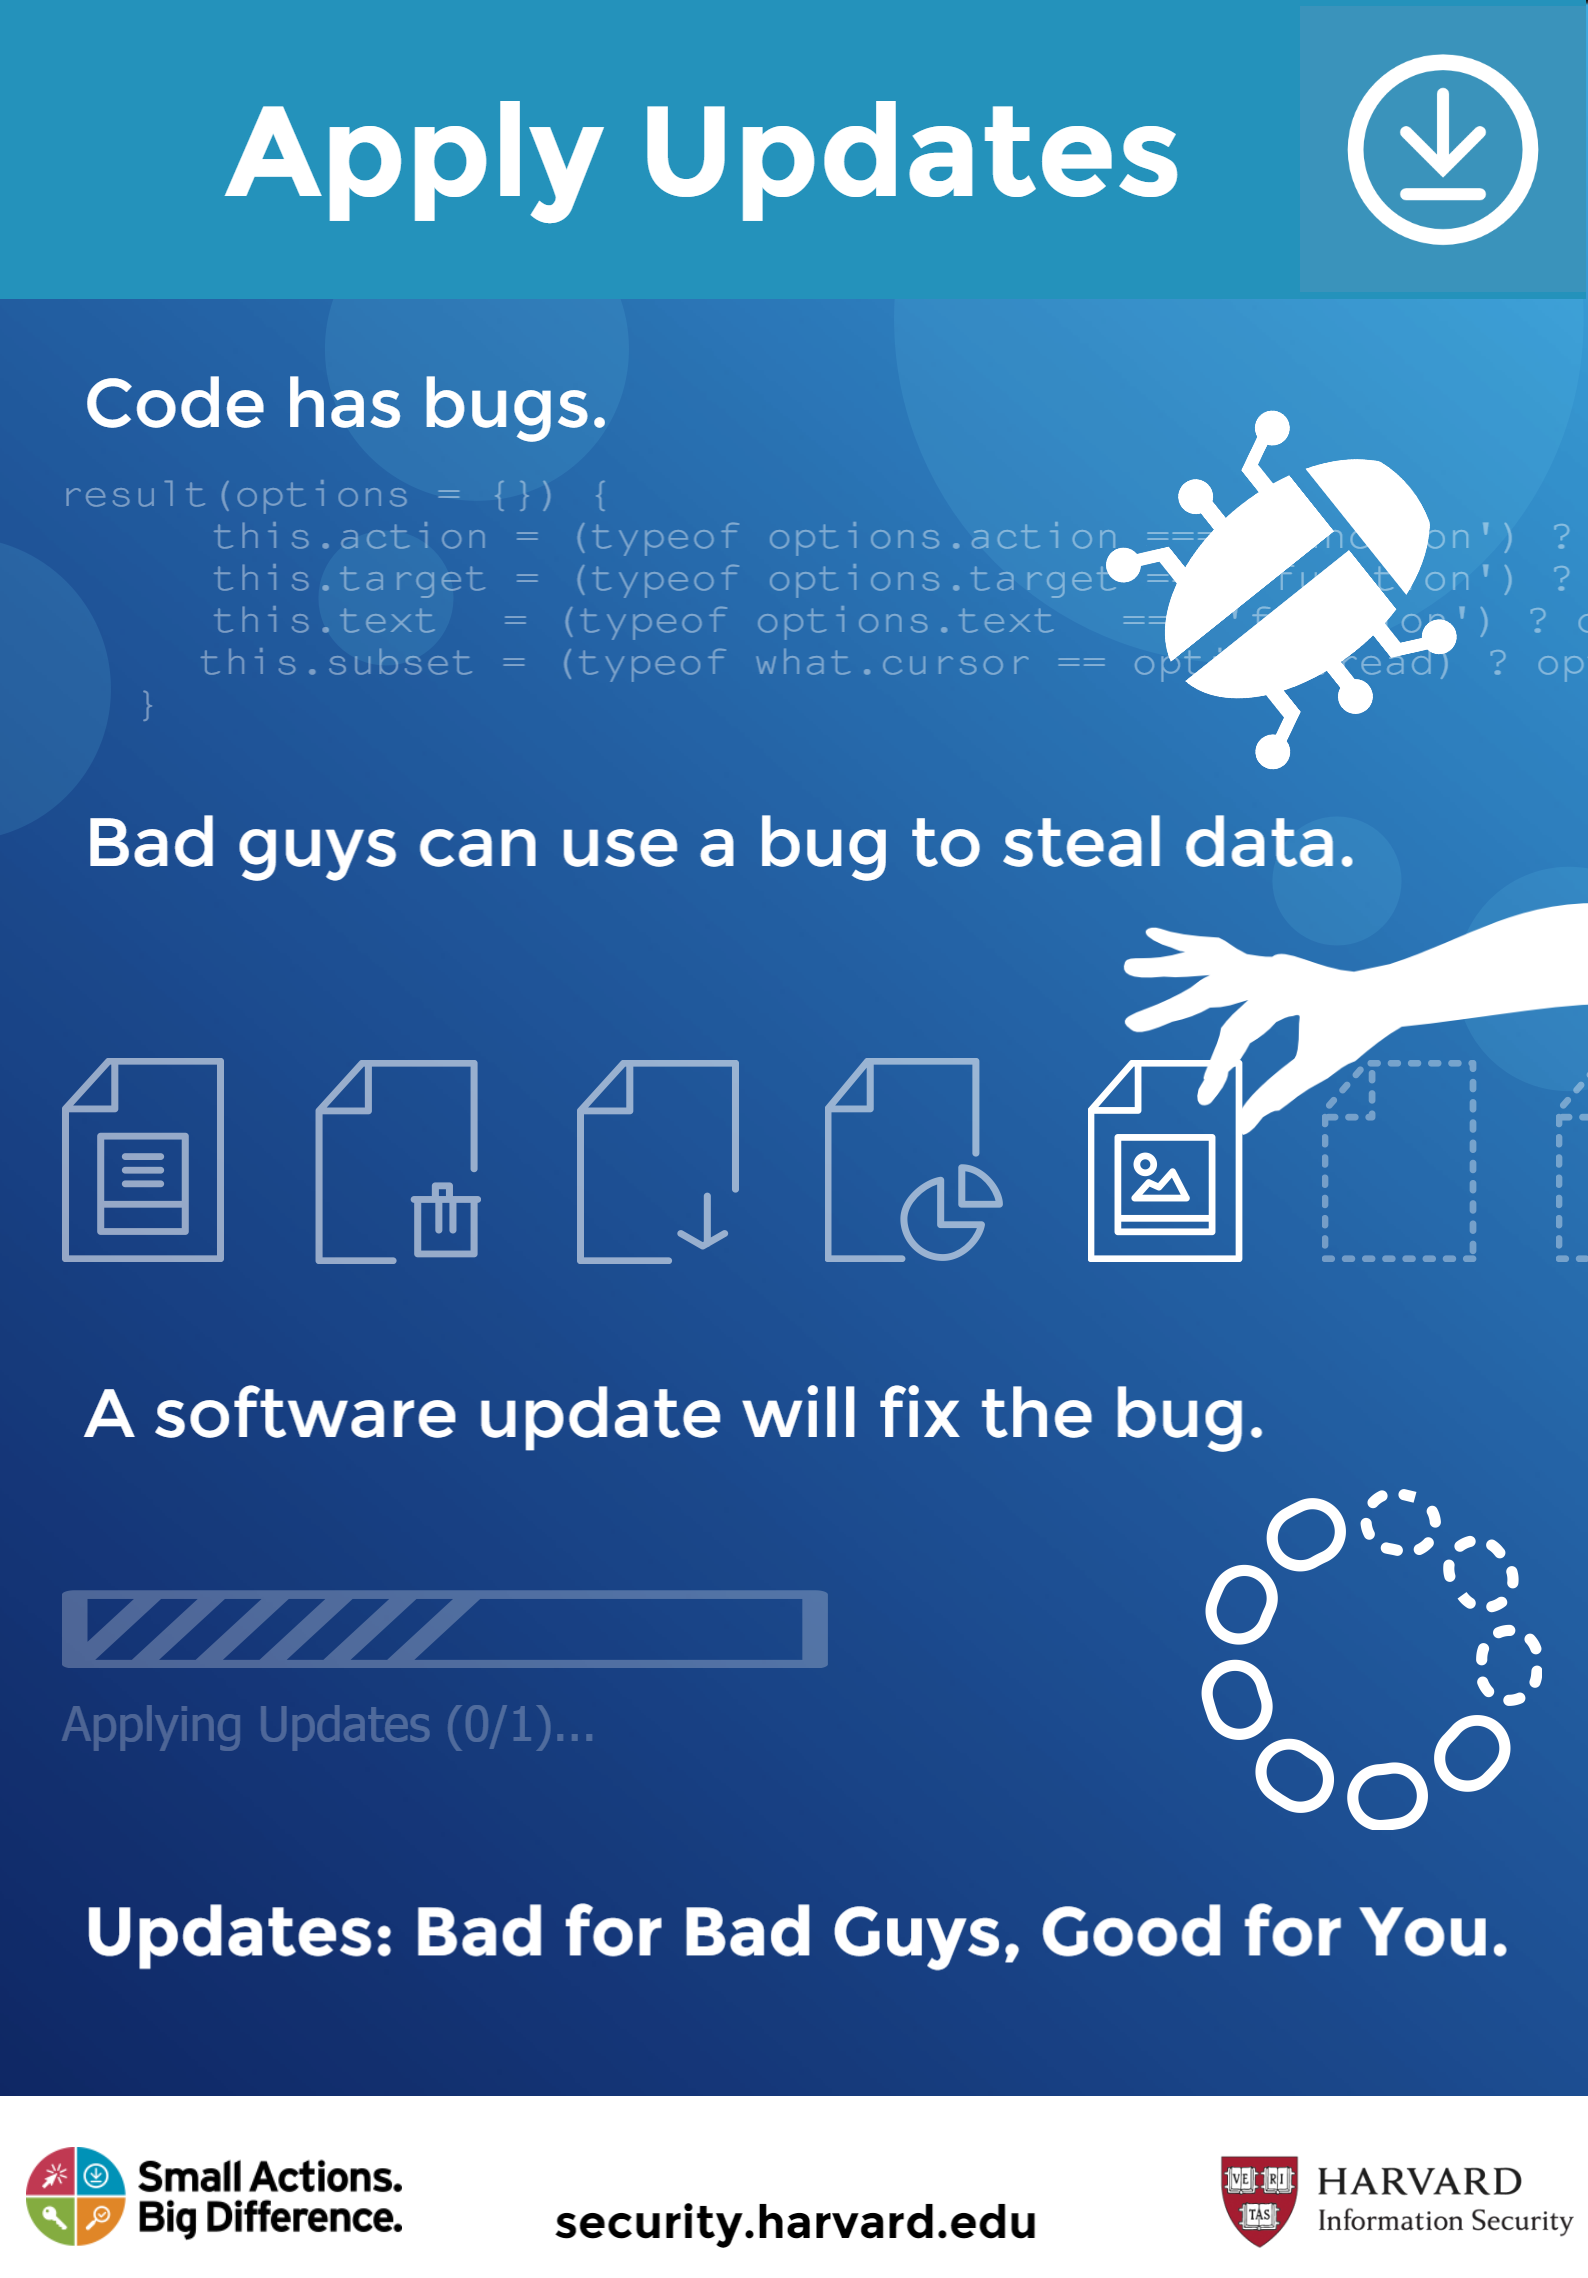 Apply Updates Information Security